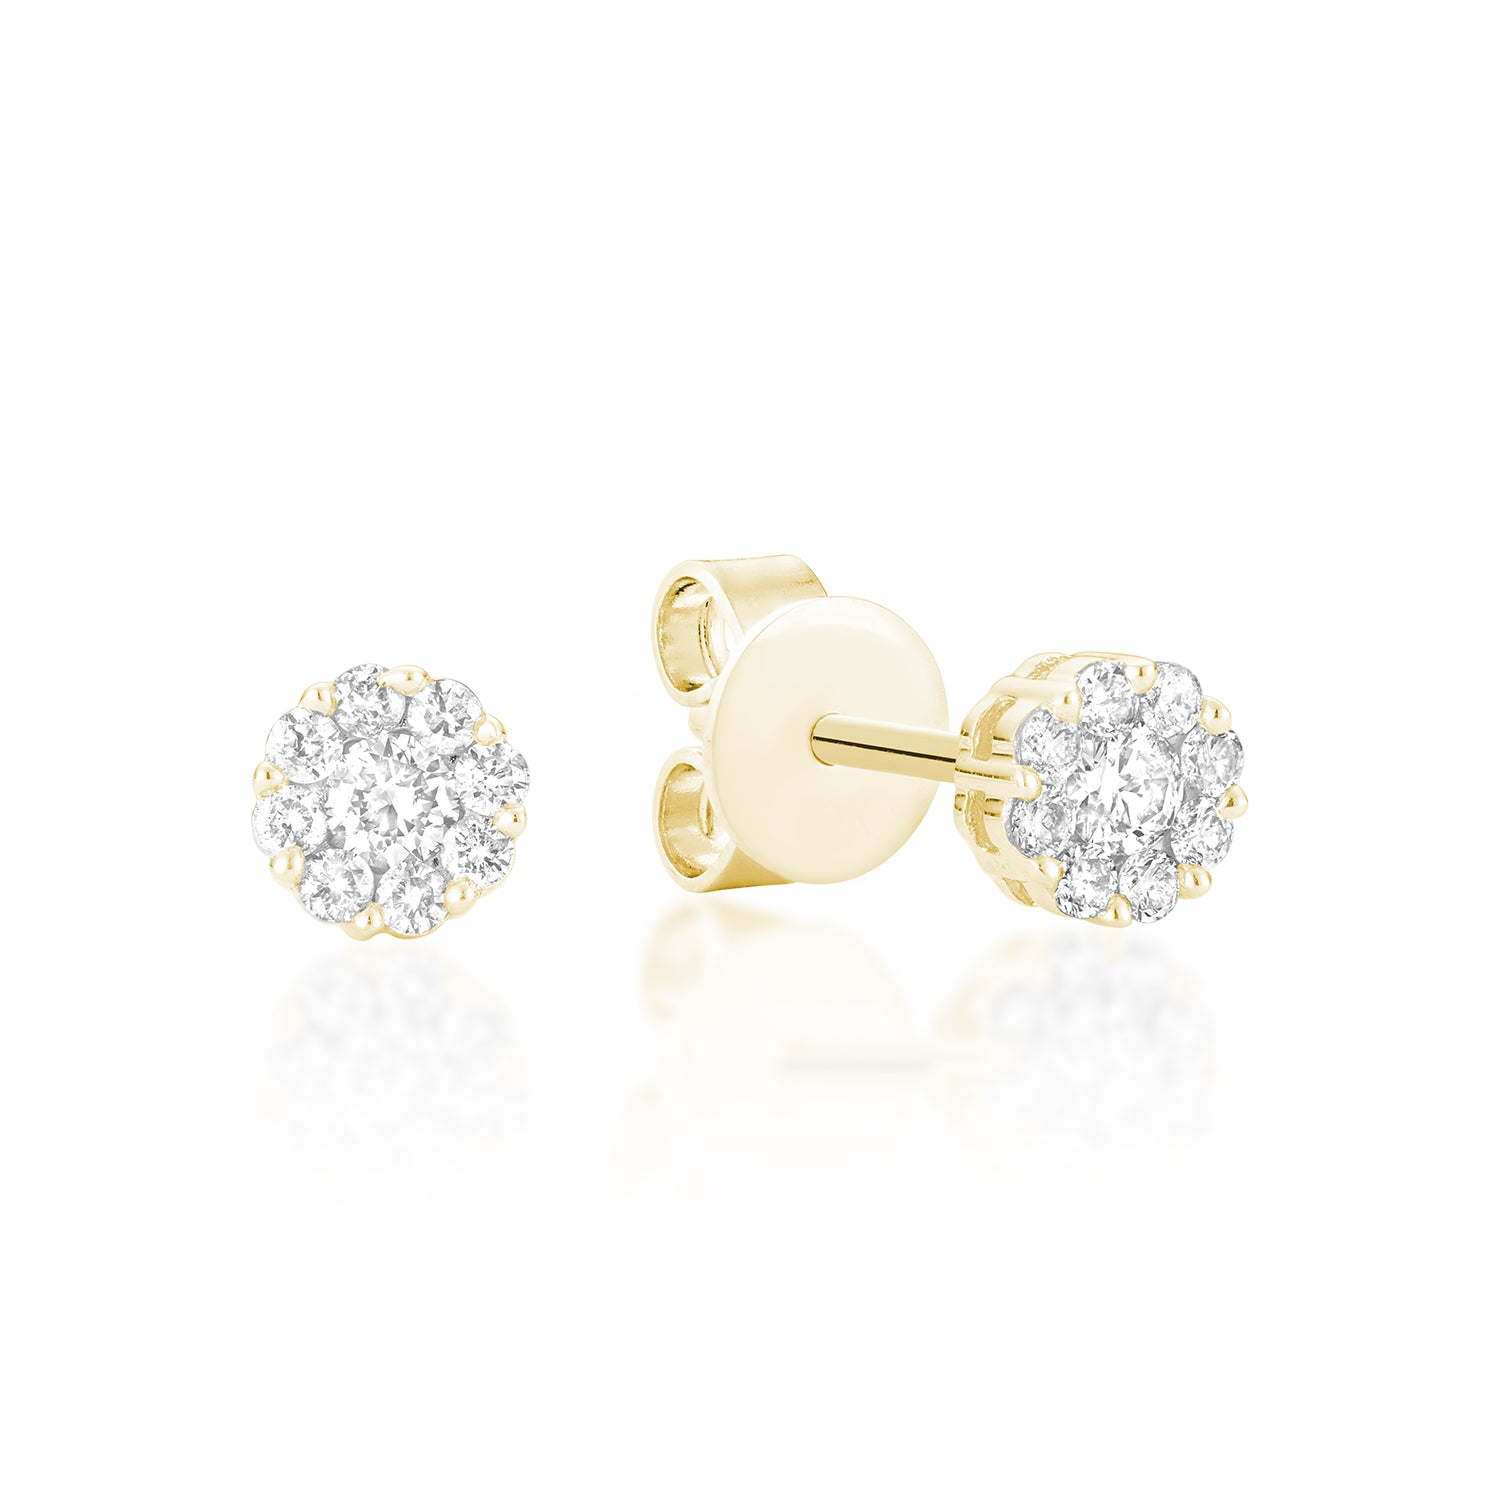 Hemsleys Collection 14K Cluster Illusion Set Diamond Stud Earrings